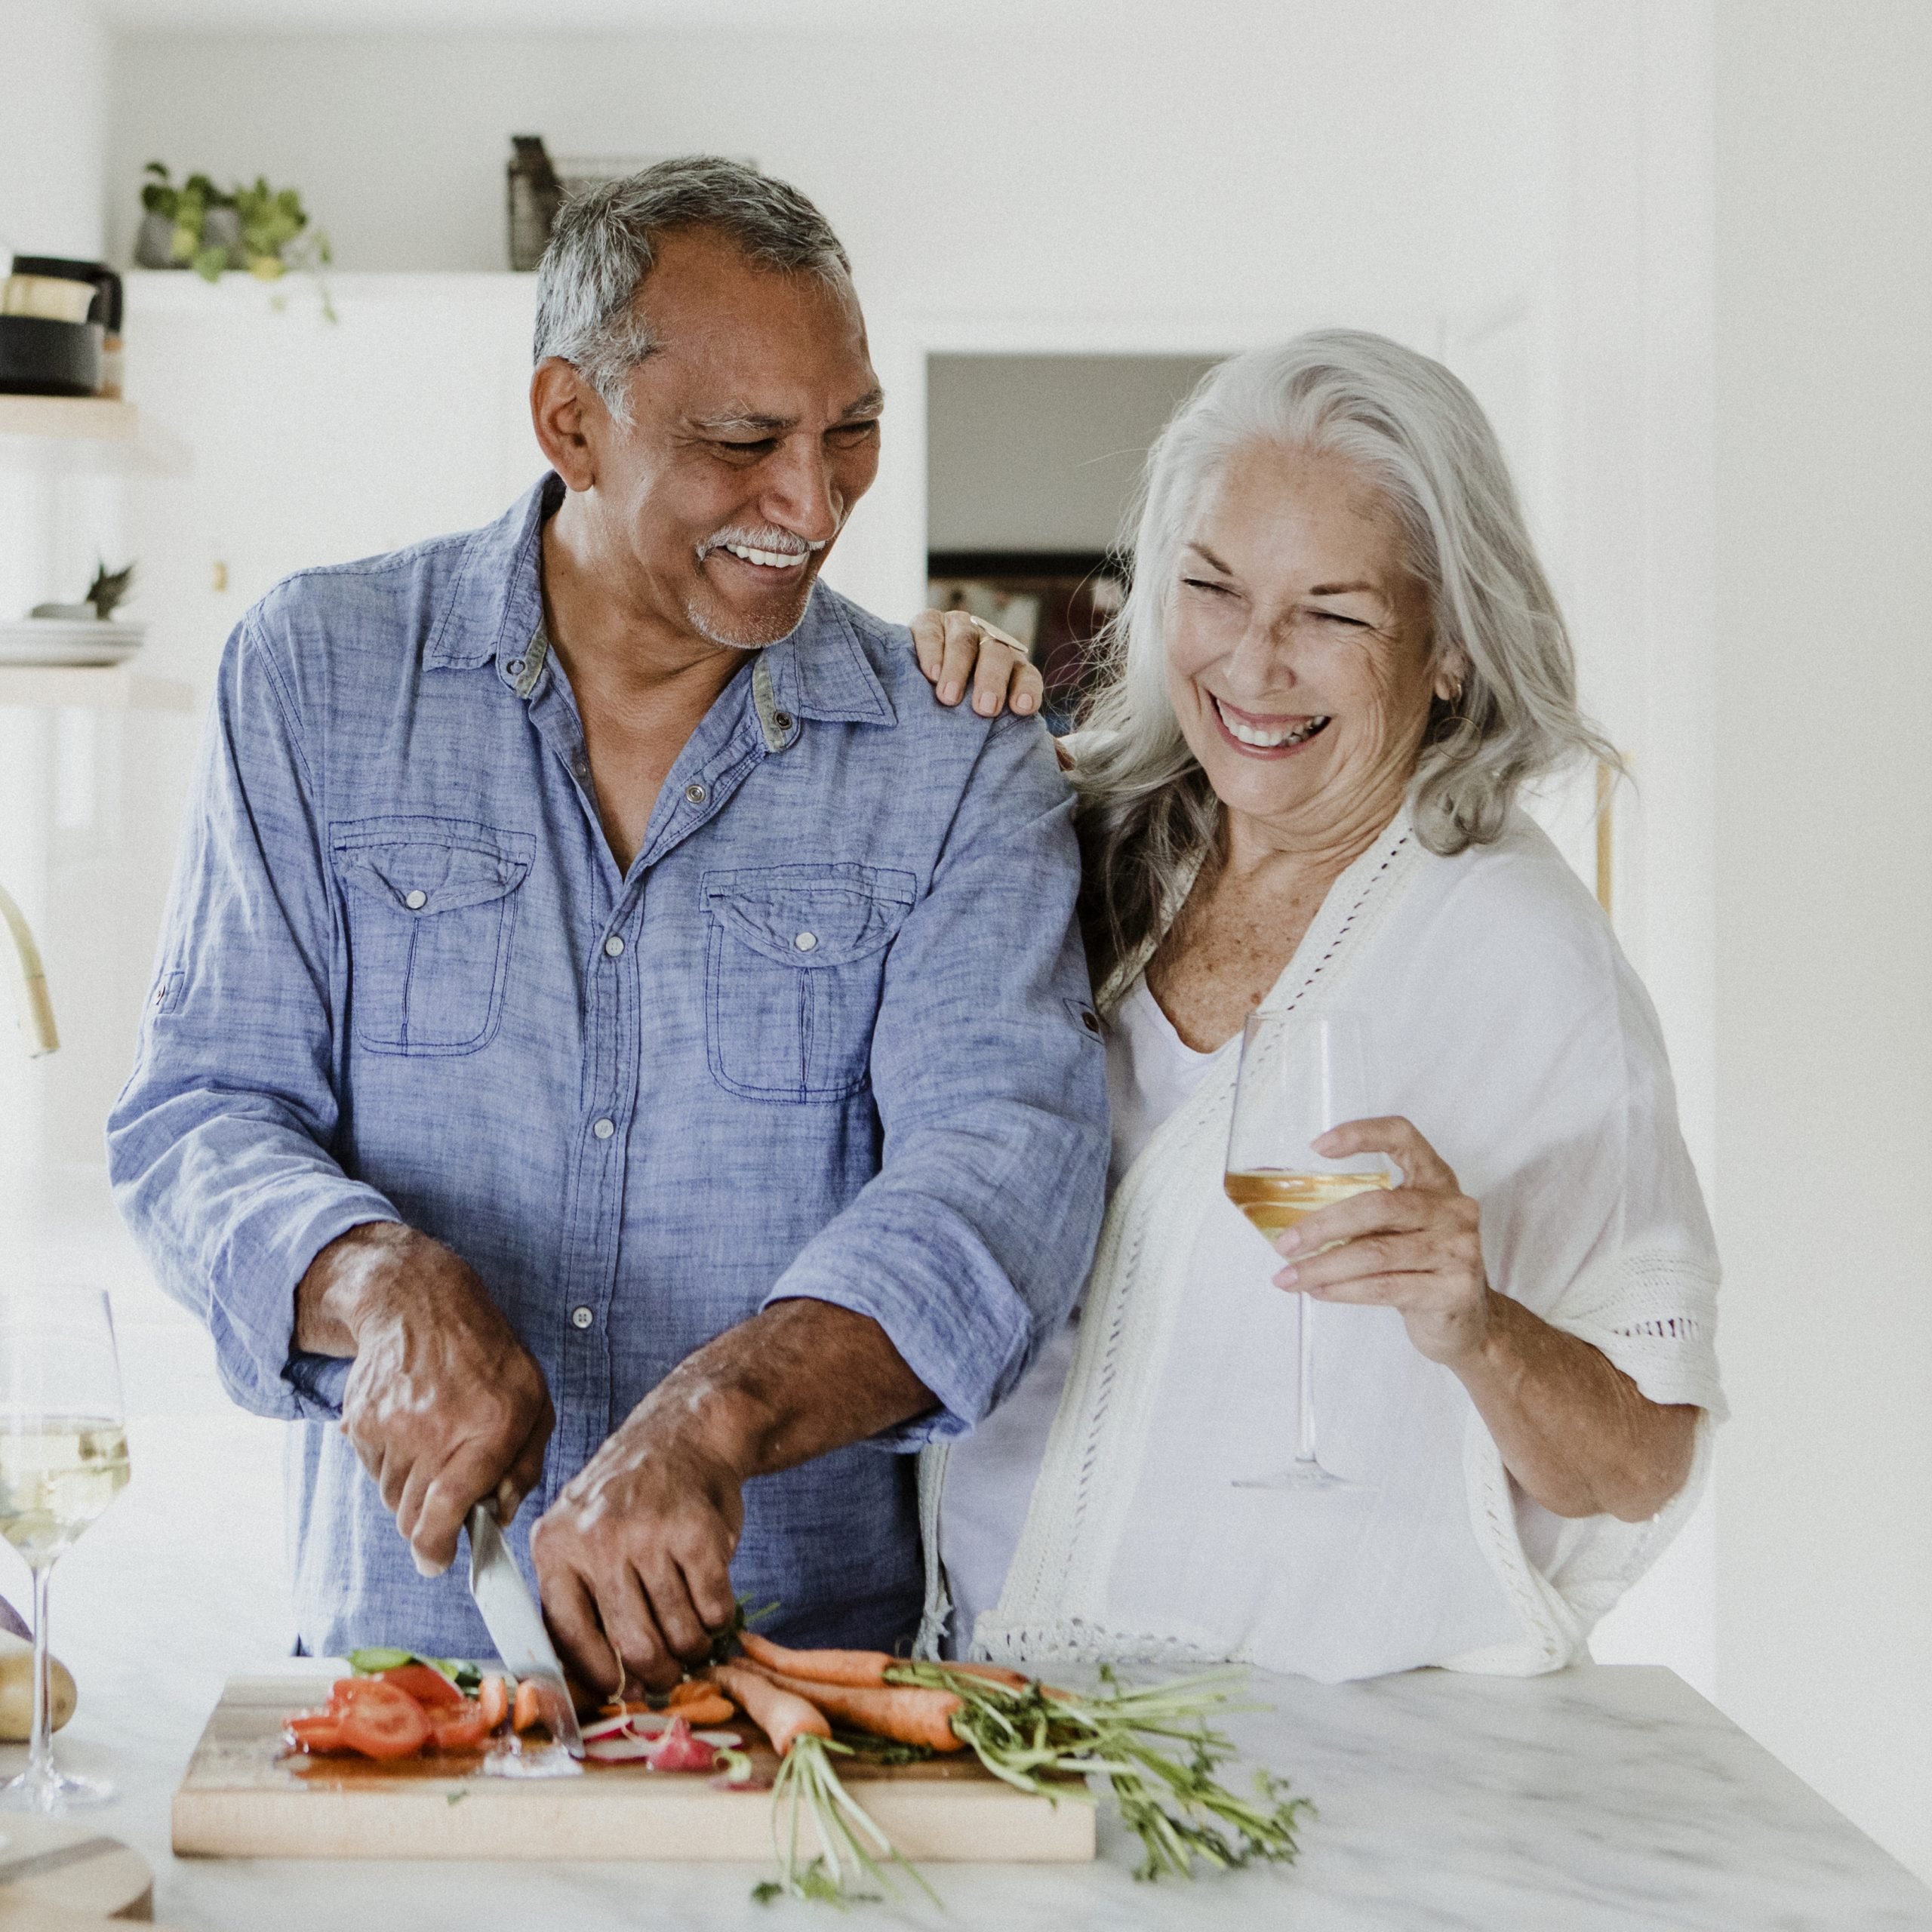 couple cooking in a kitchen